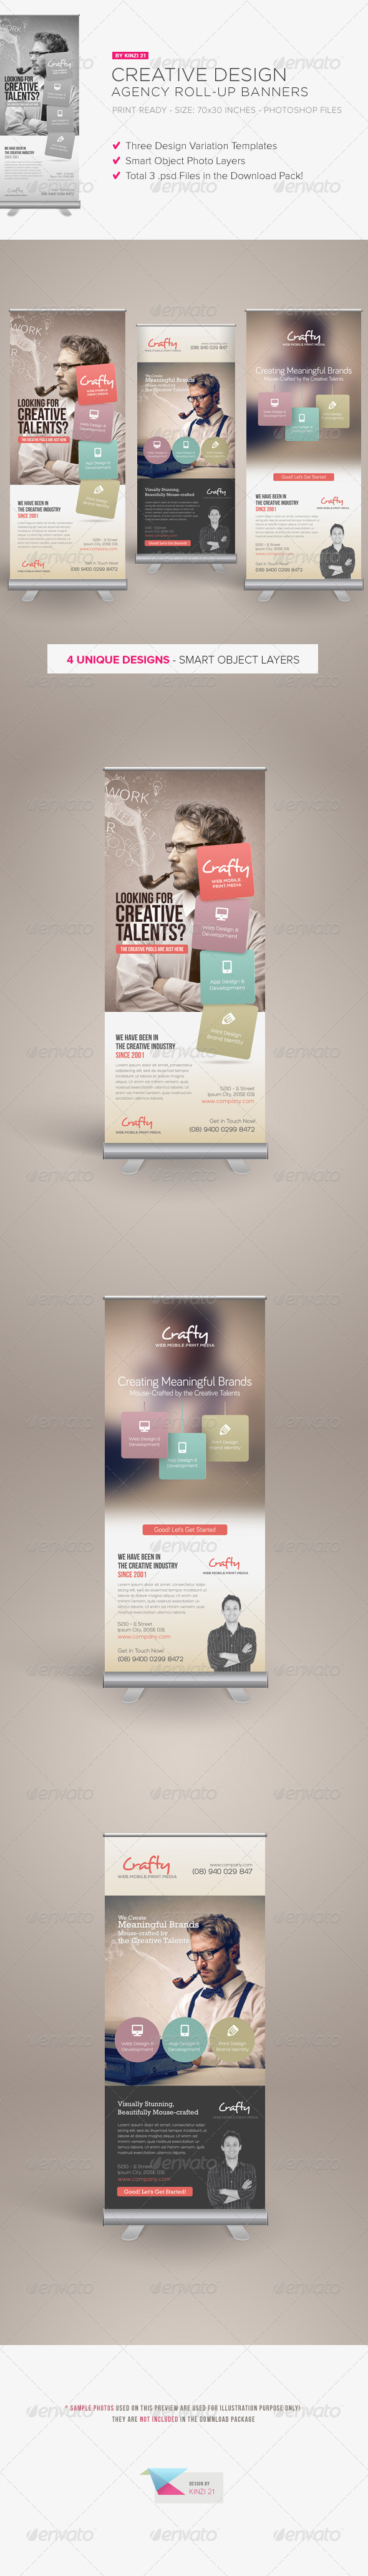 GraphicRiver Creative Design Agency Roll-up Banners 5899639